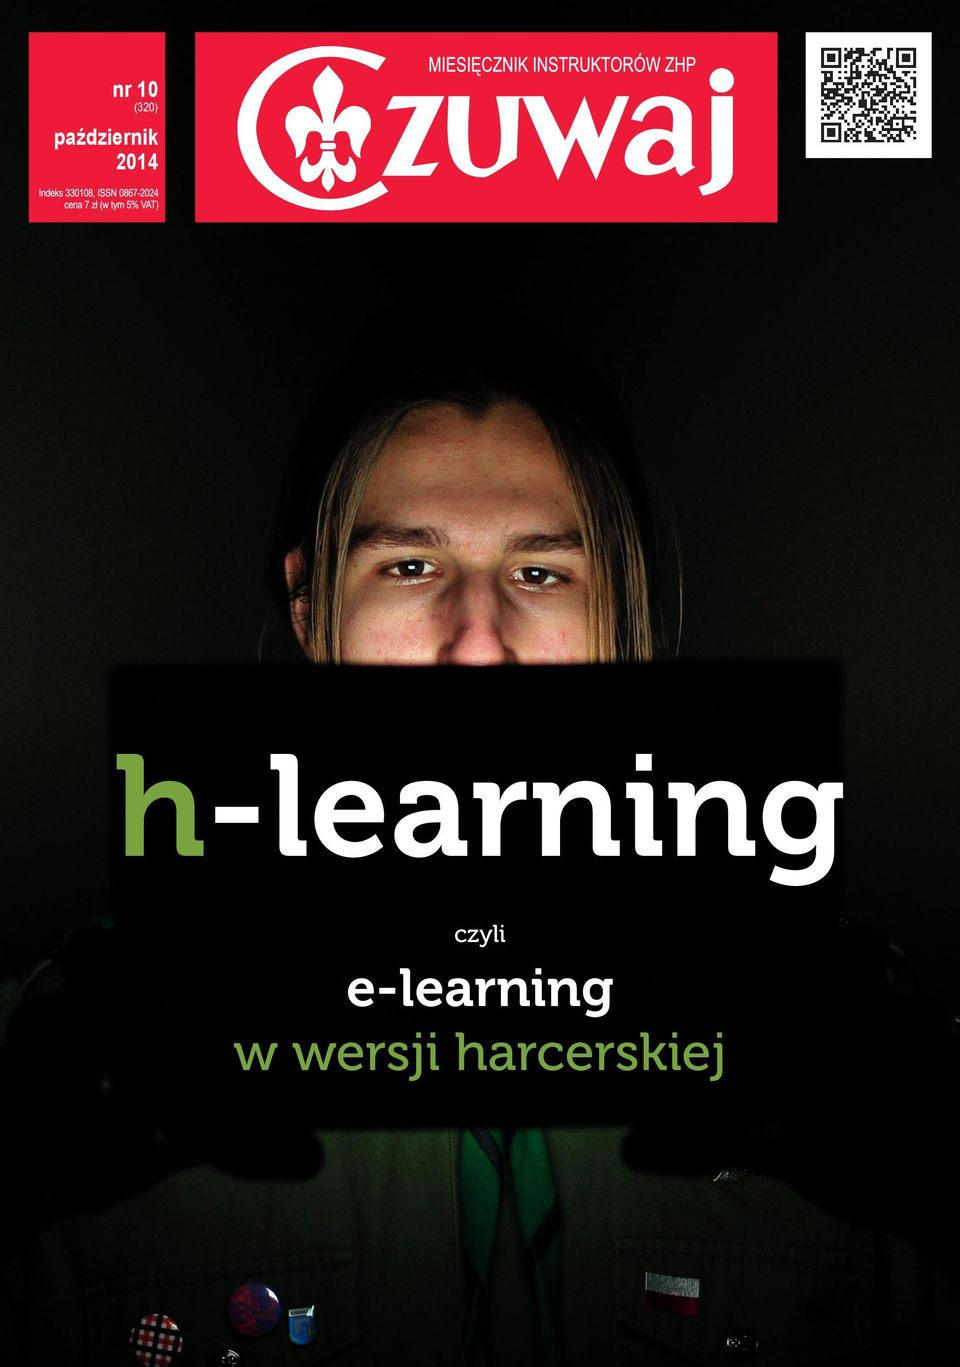 h-learning czyli